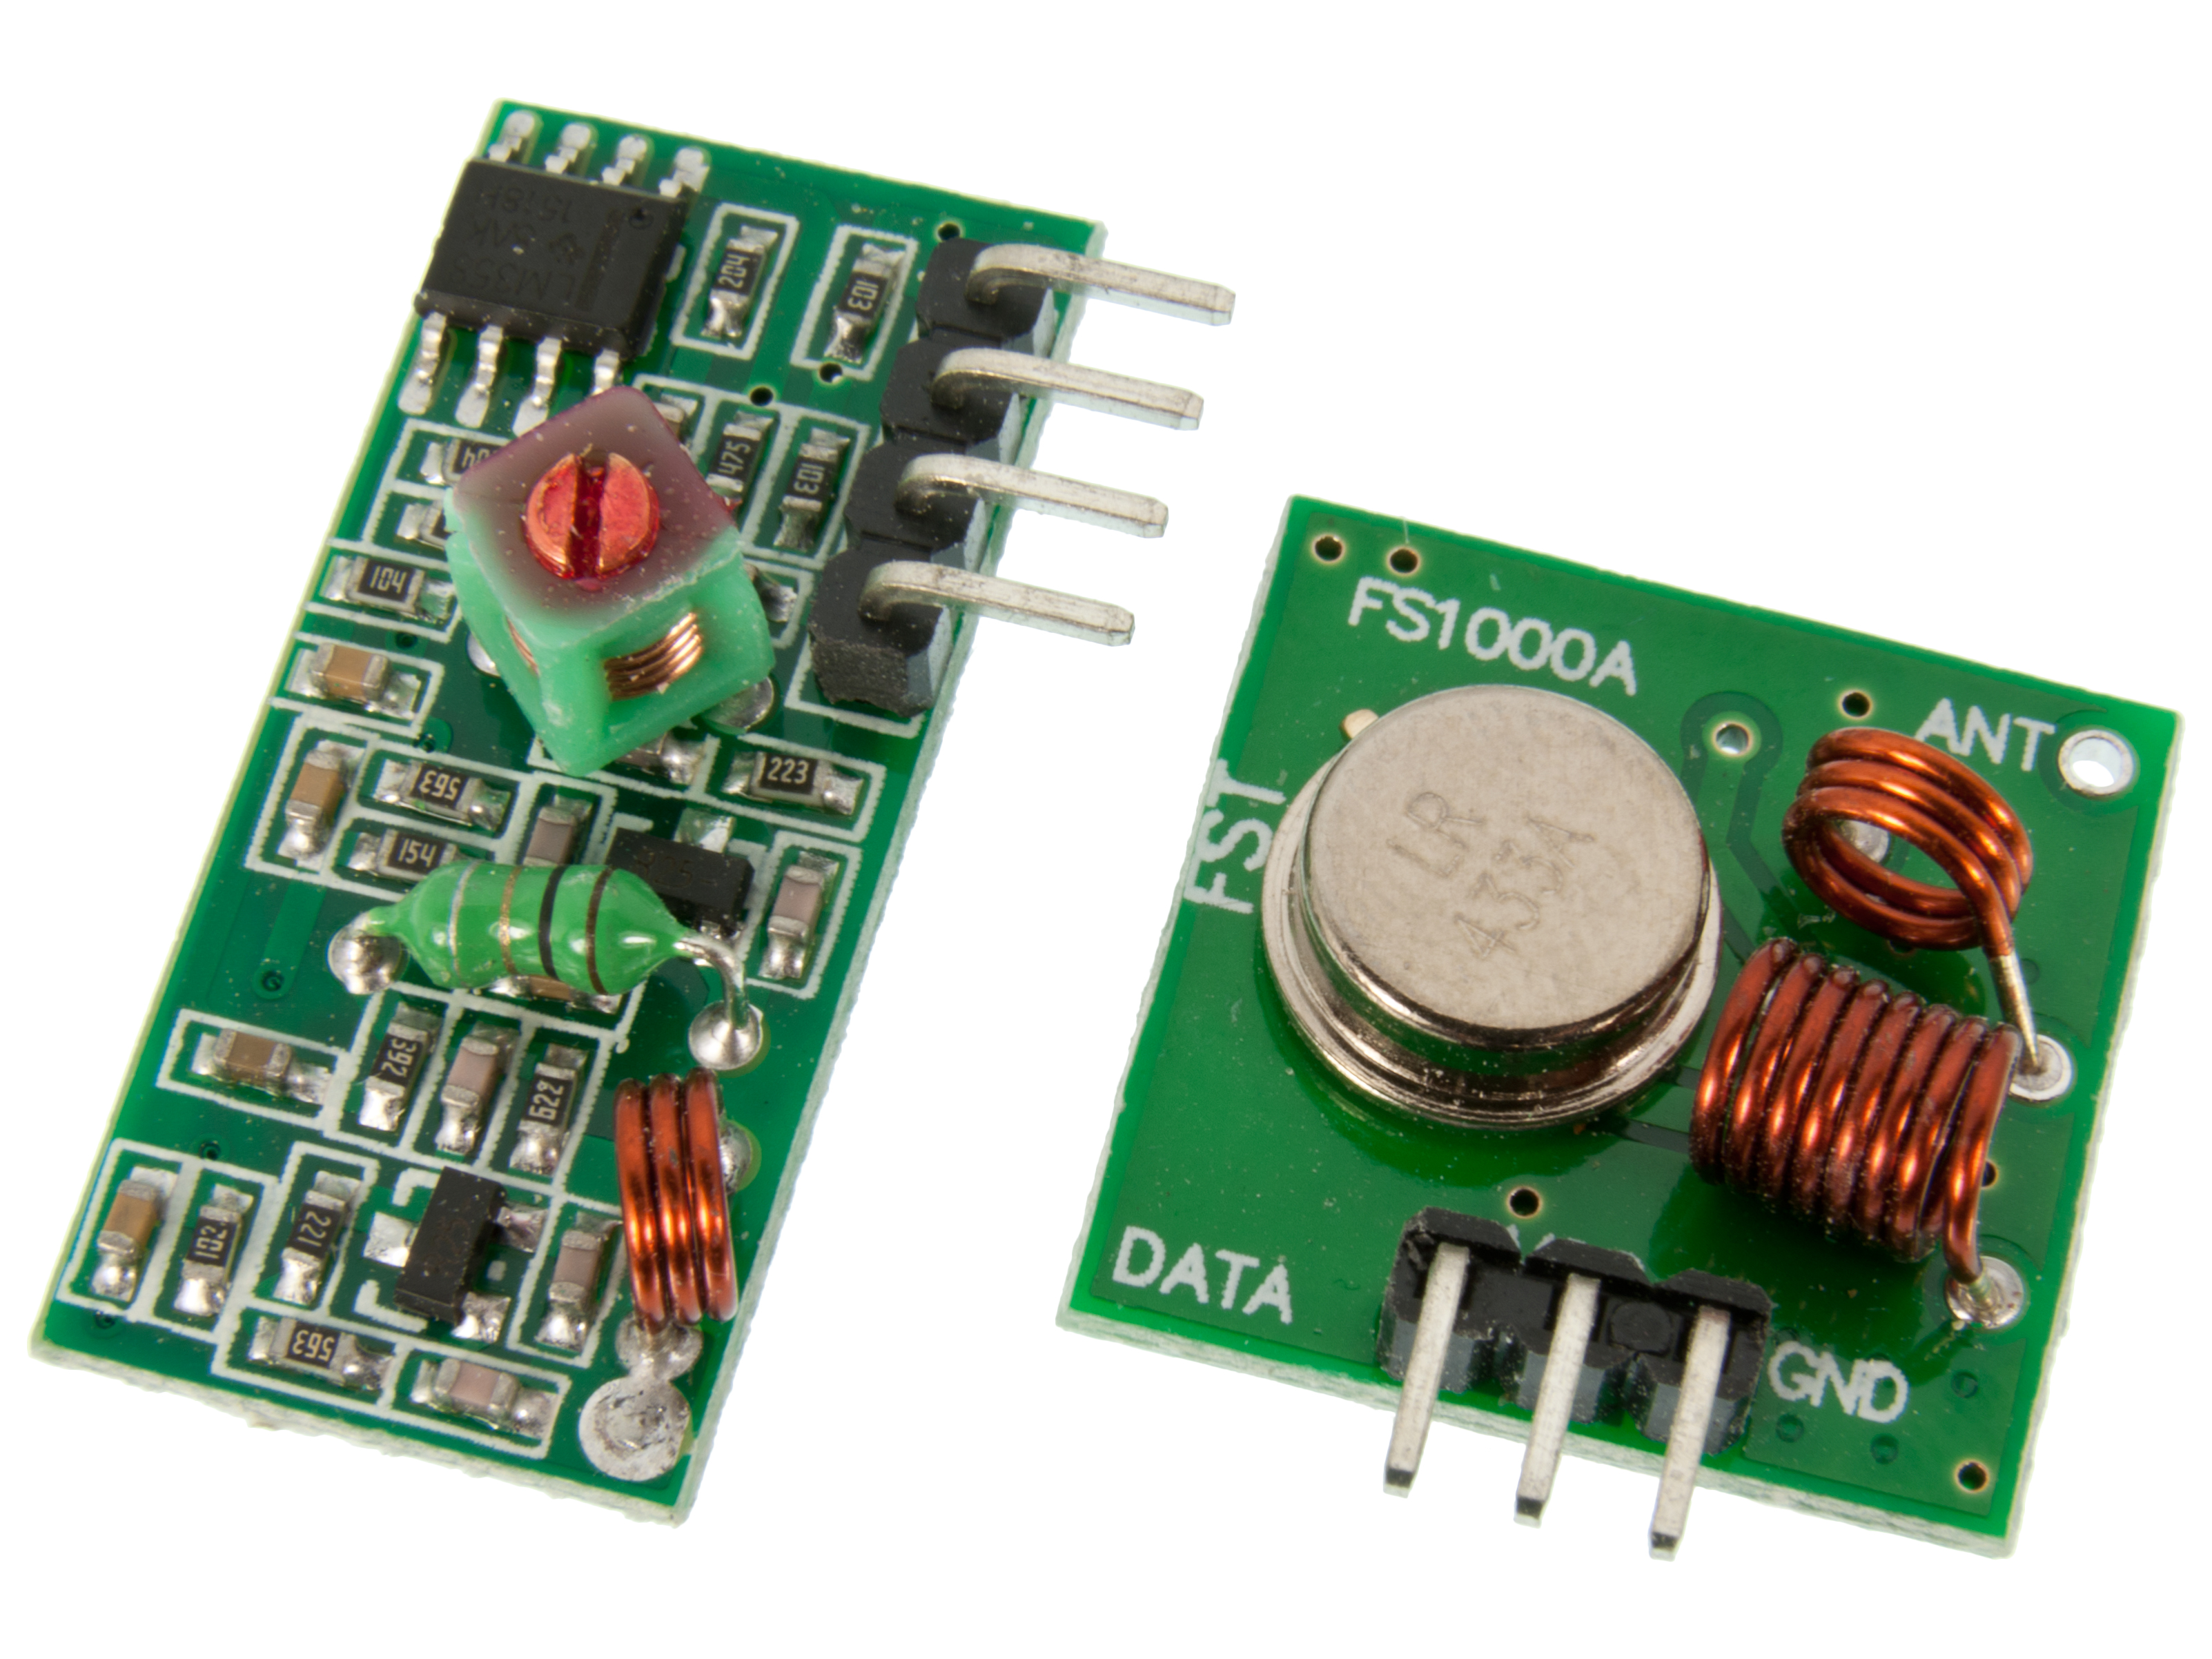 Buy Rf Link 433mhz Transmitter And Reciever At The Right Price Circuit Diagram Home Modules Units